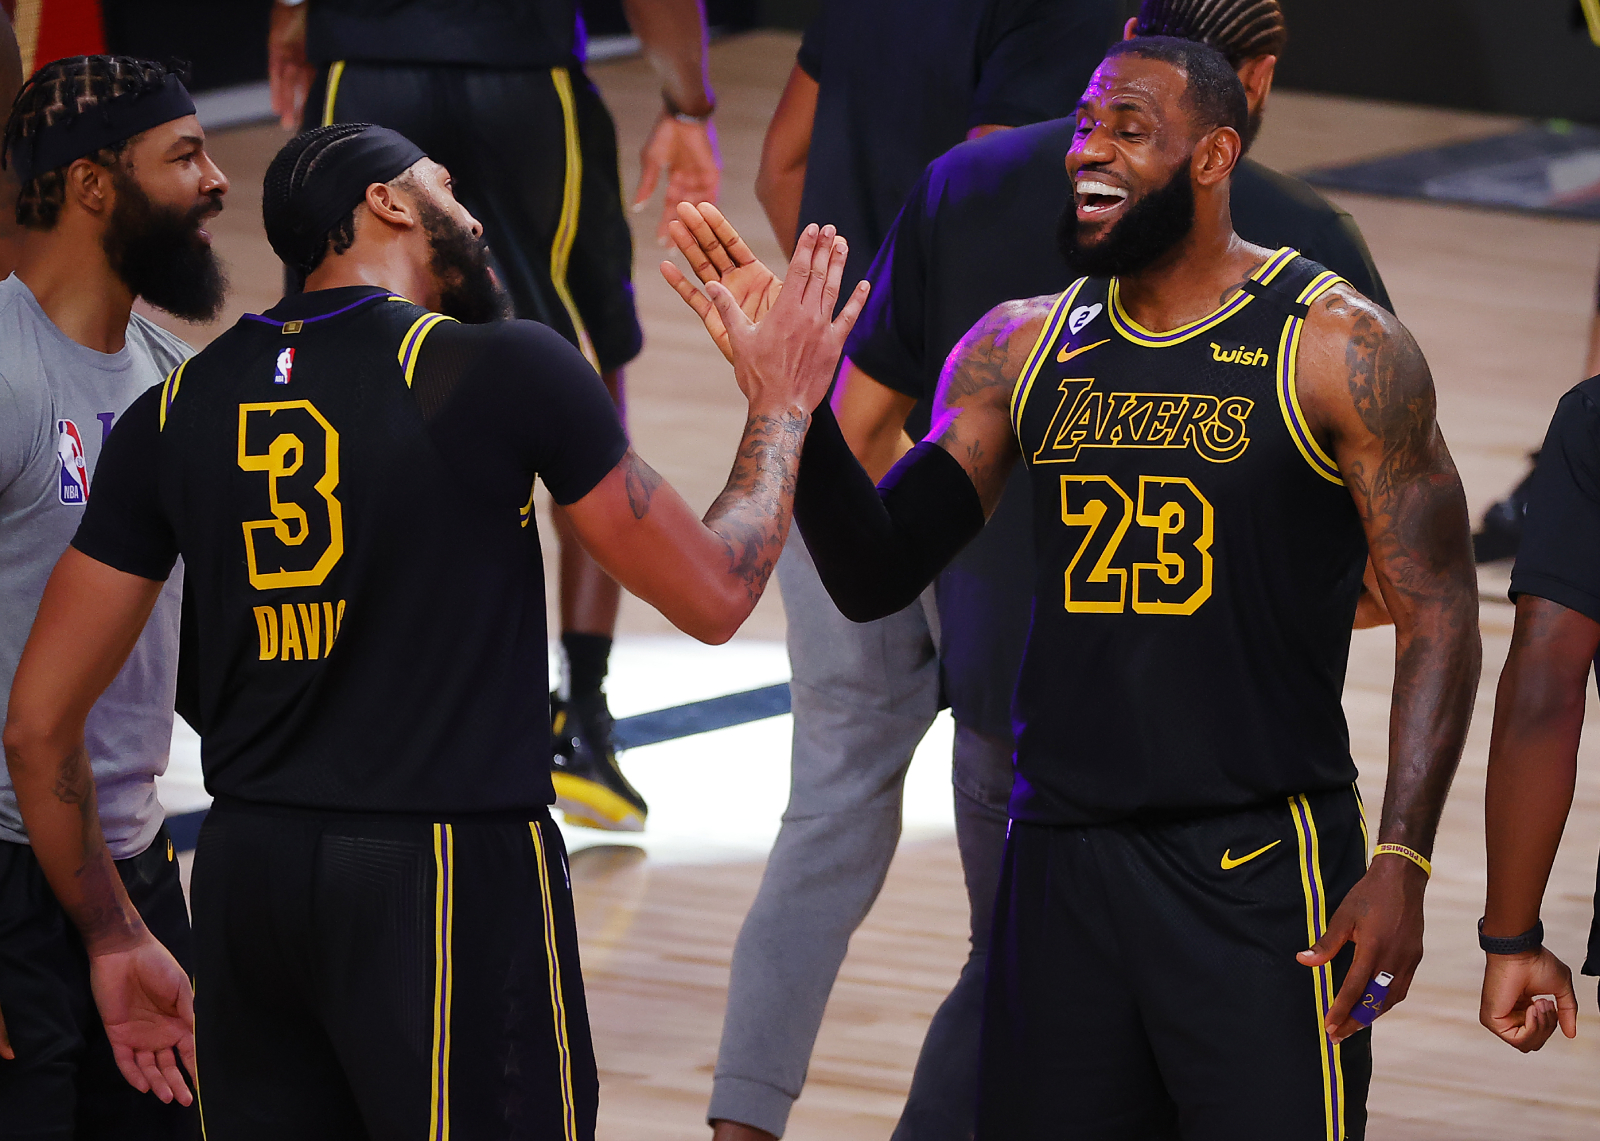 LeBron James has played well with all his Lakers teammates. However, he has had great chemistry with a teammate that isn't Anthony Davis.